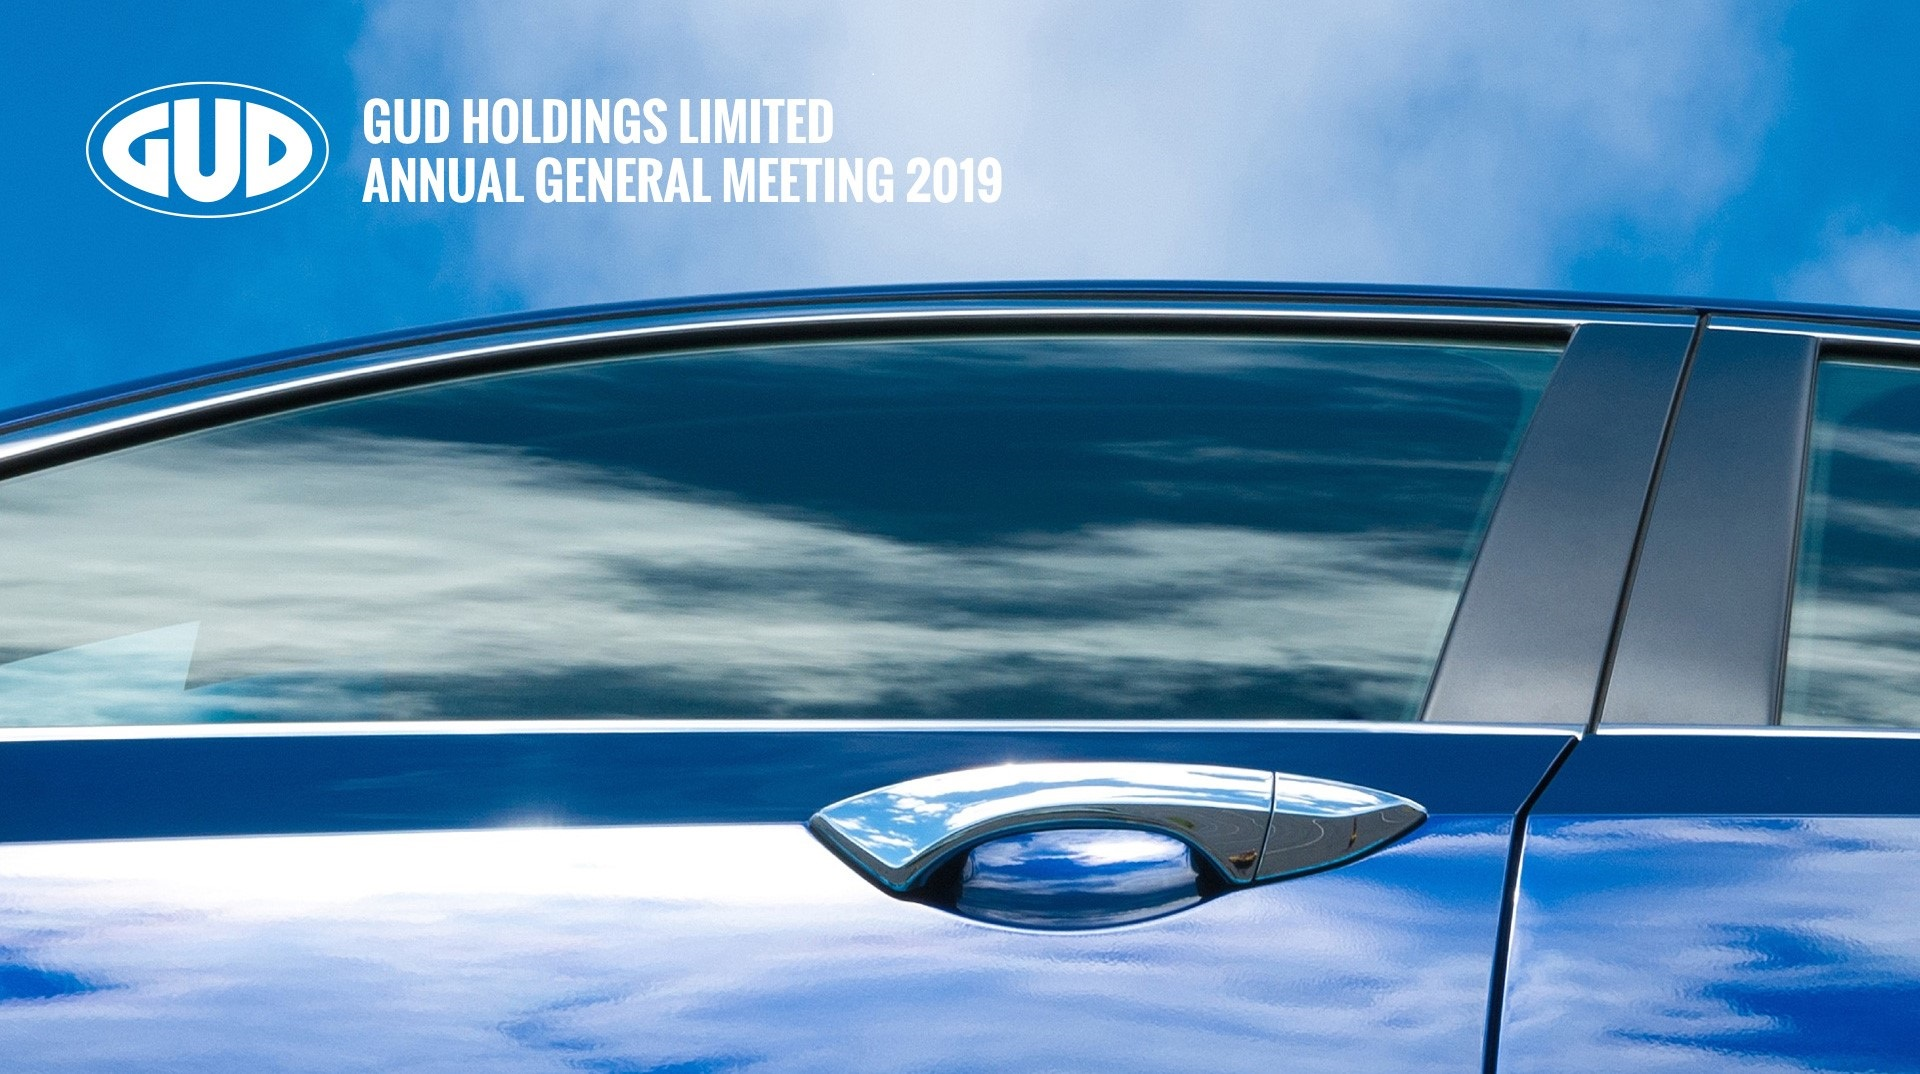 GUD Holdings Limited FY19 Annual General Meeting